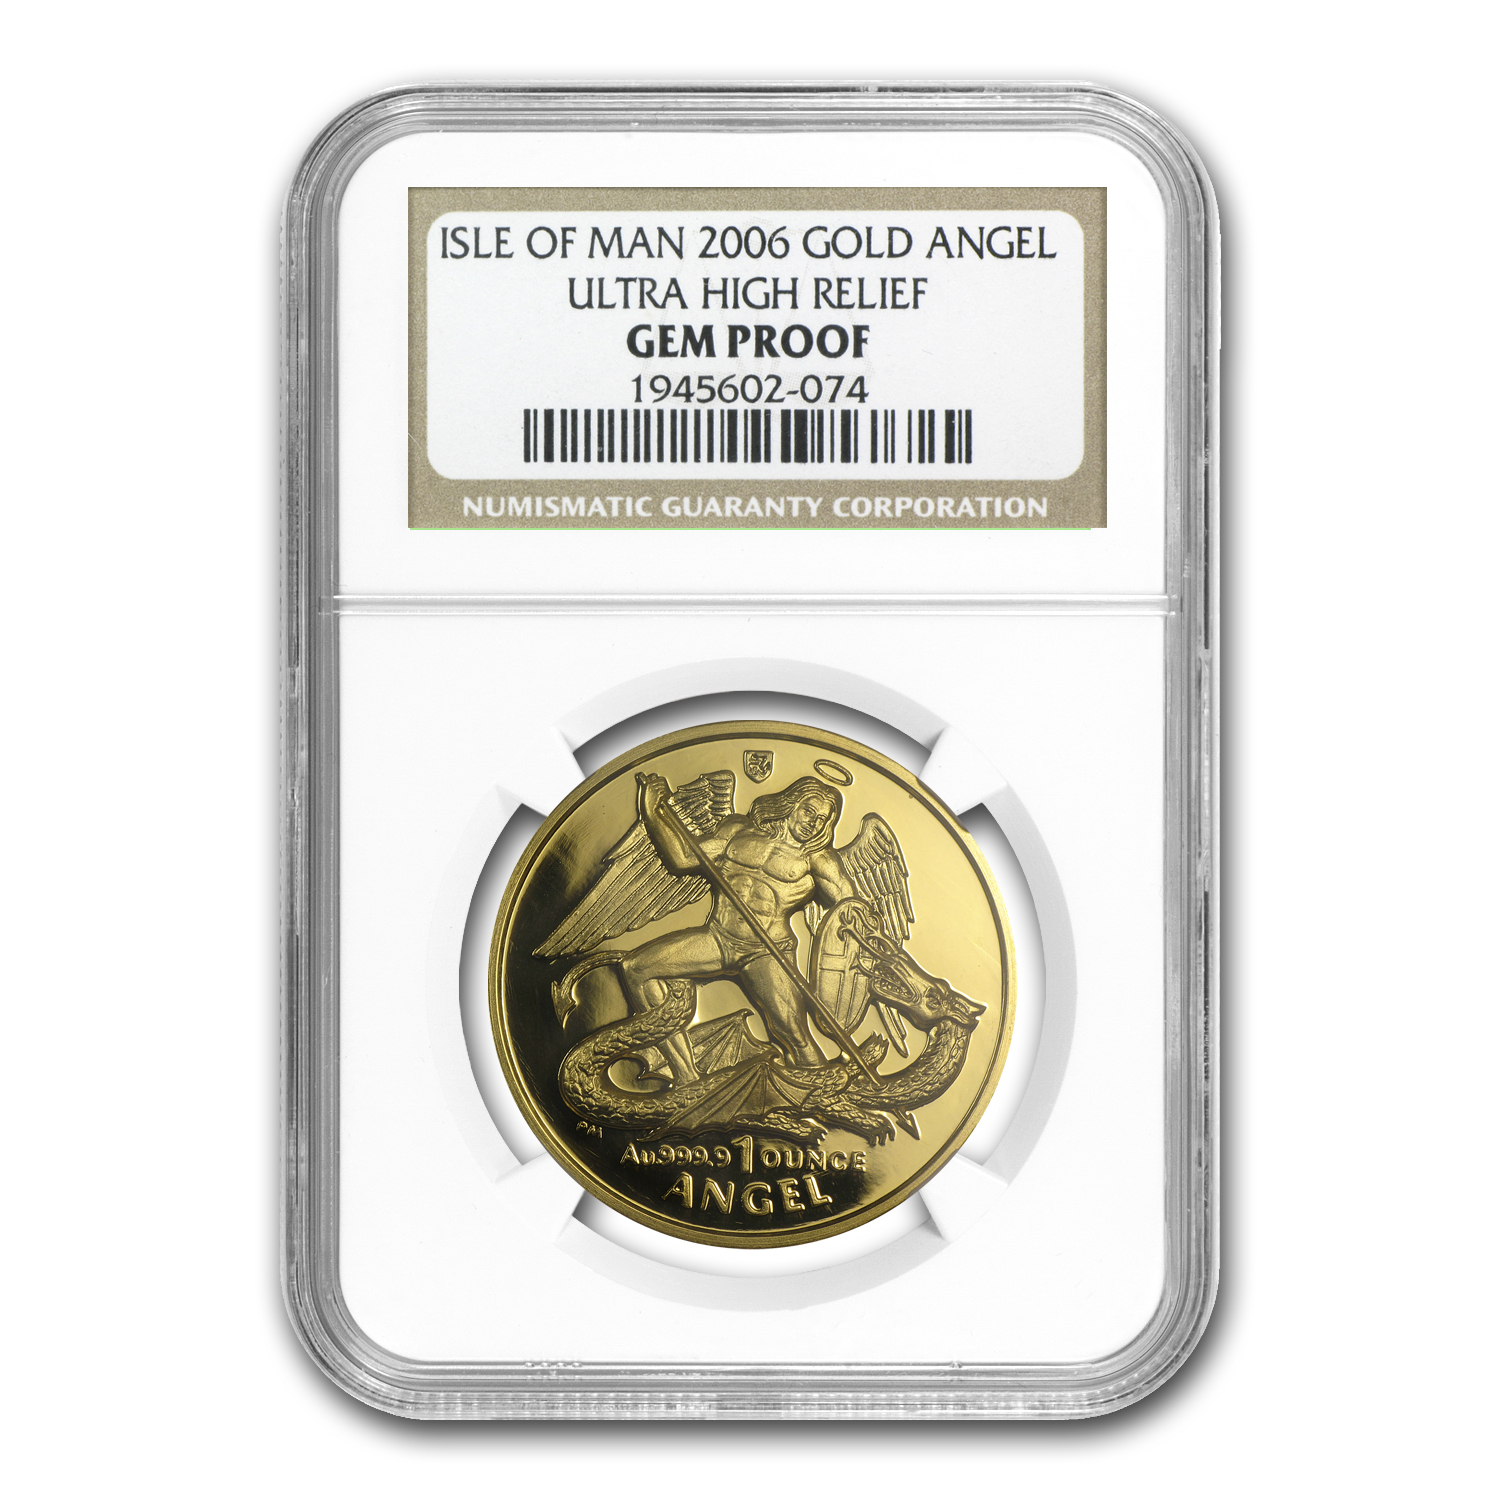 2006 Isle of Man Proof Gold Angel UHR Gem Proof NGC